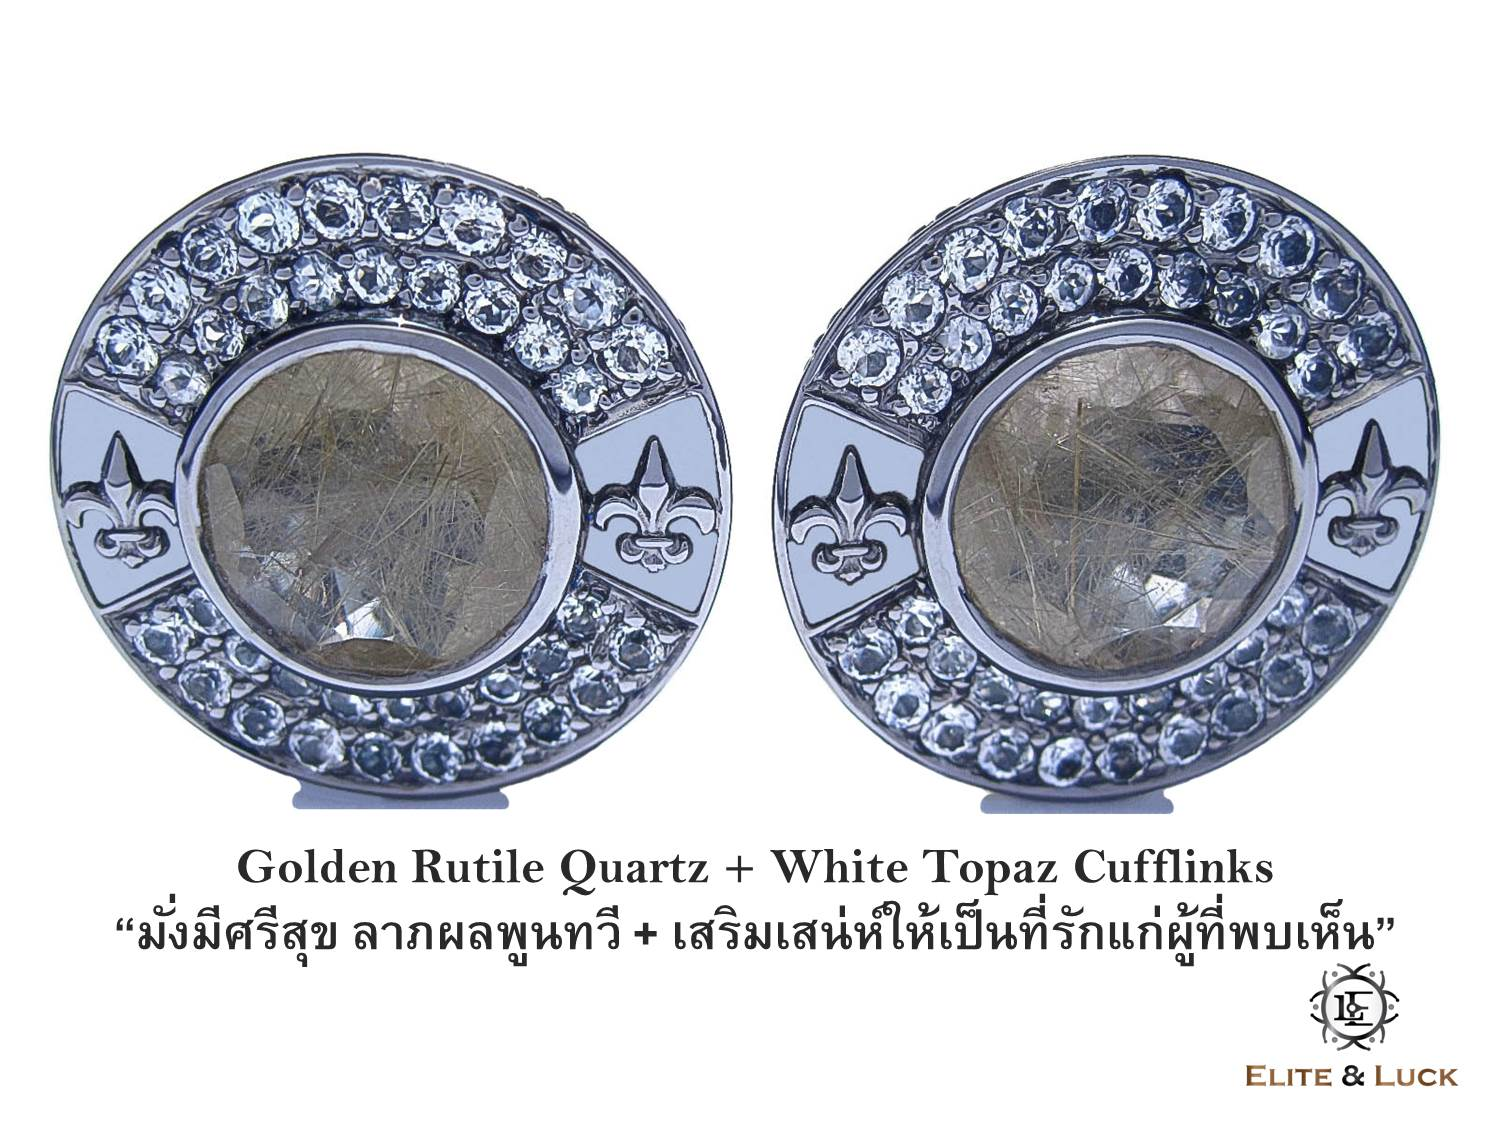 Golden Rutile Quartz + White Topaz Sterling Silver Cufflinks สี Black Rhodium รุ่น Royal